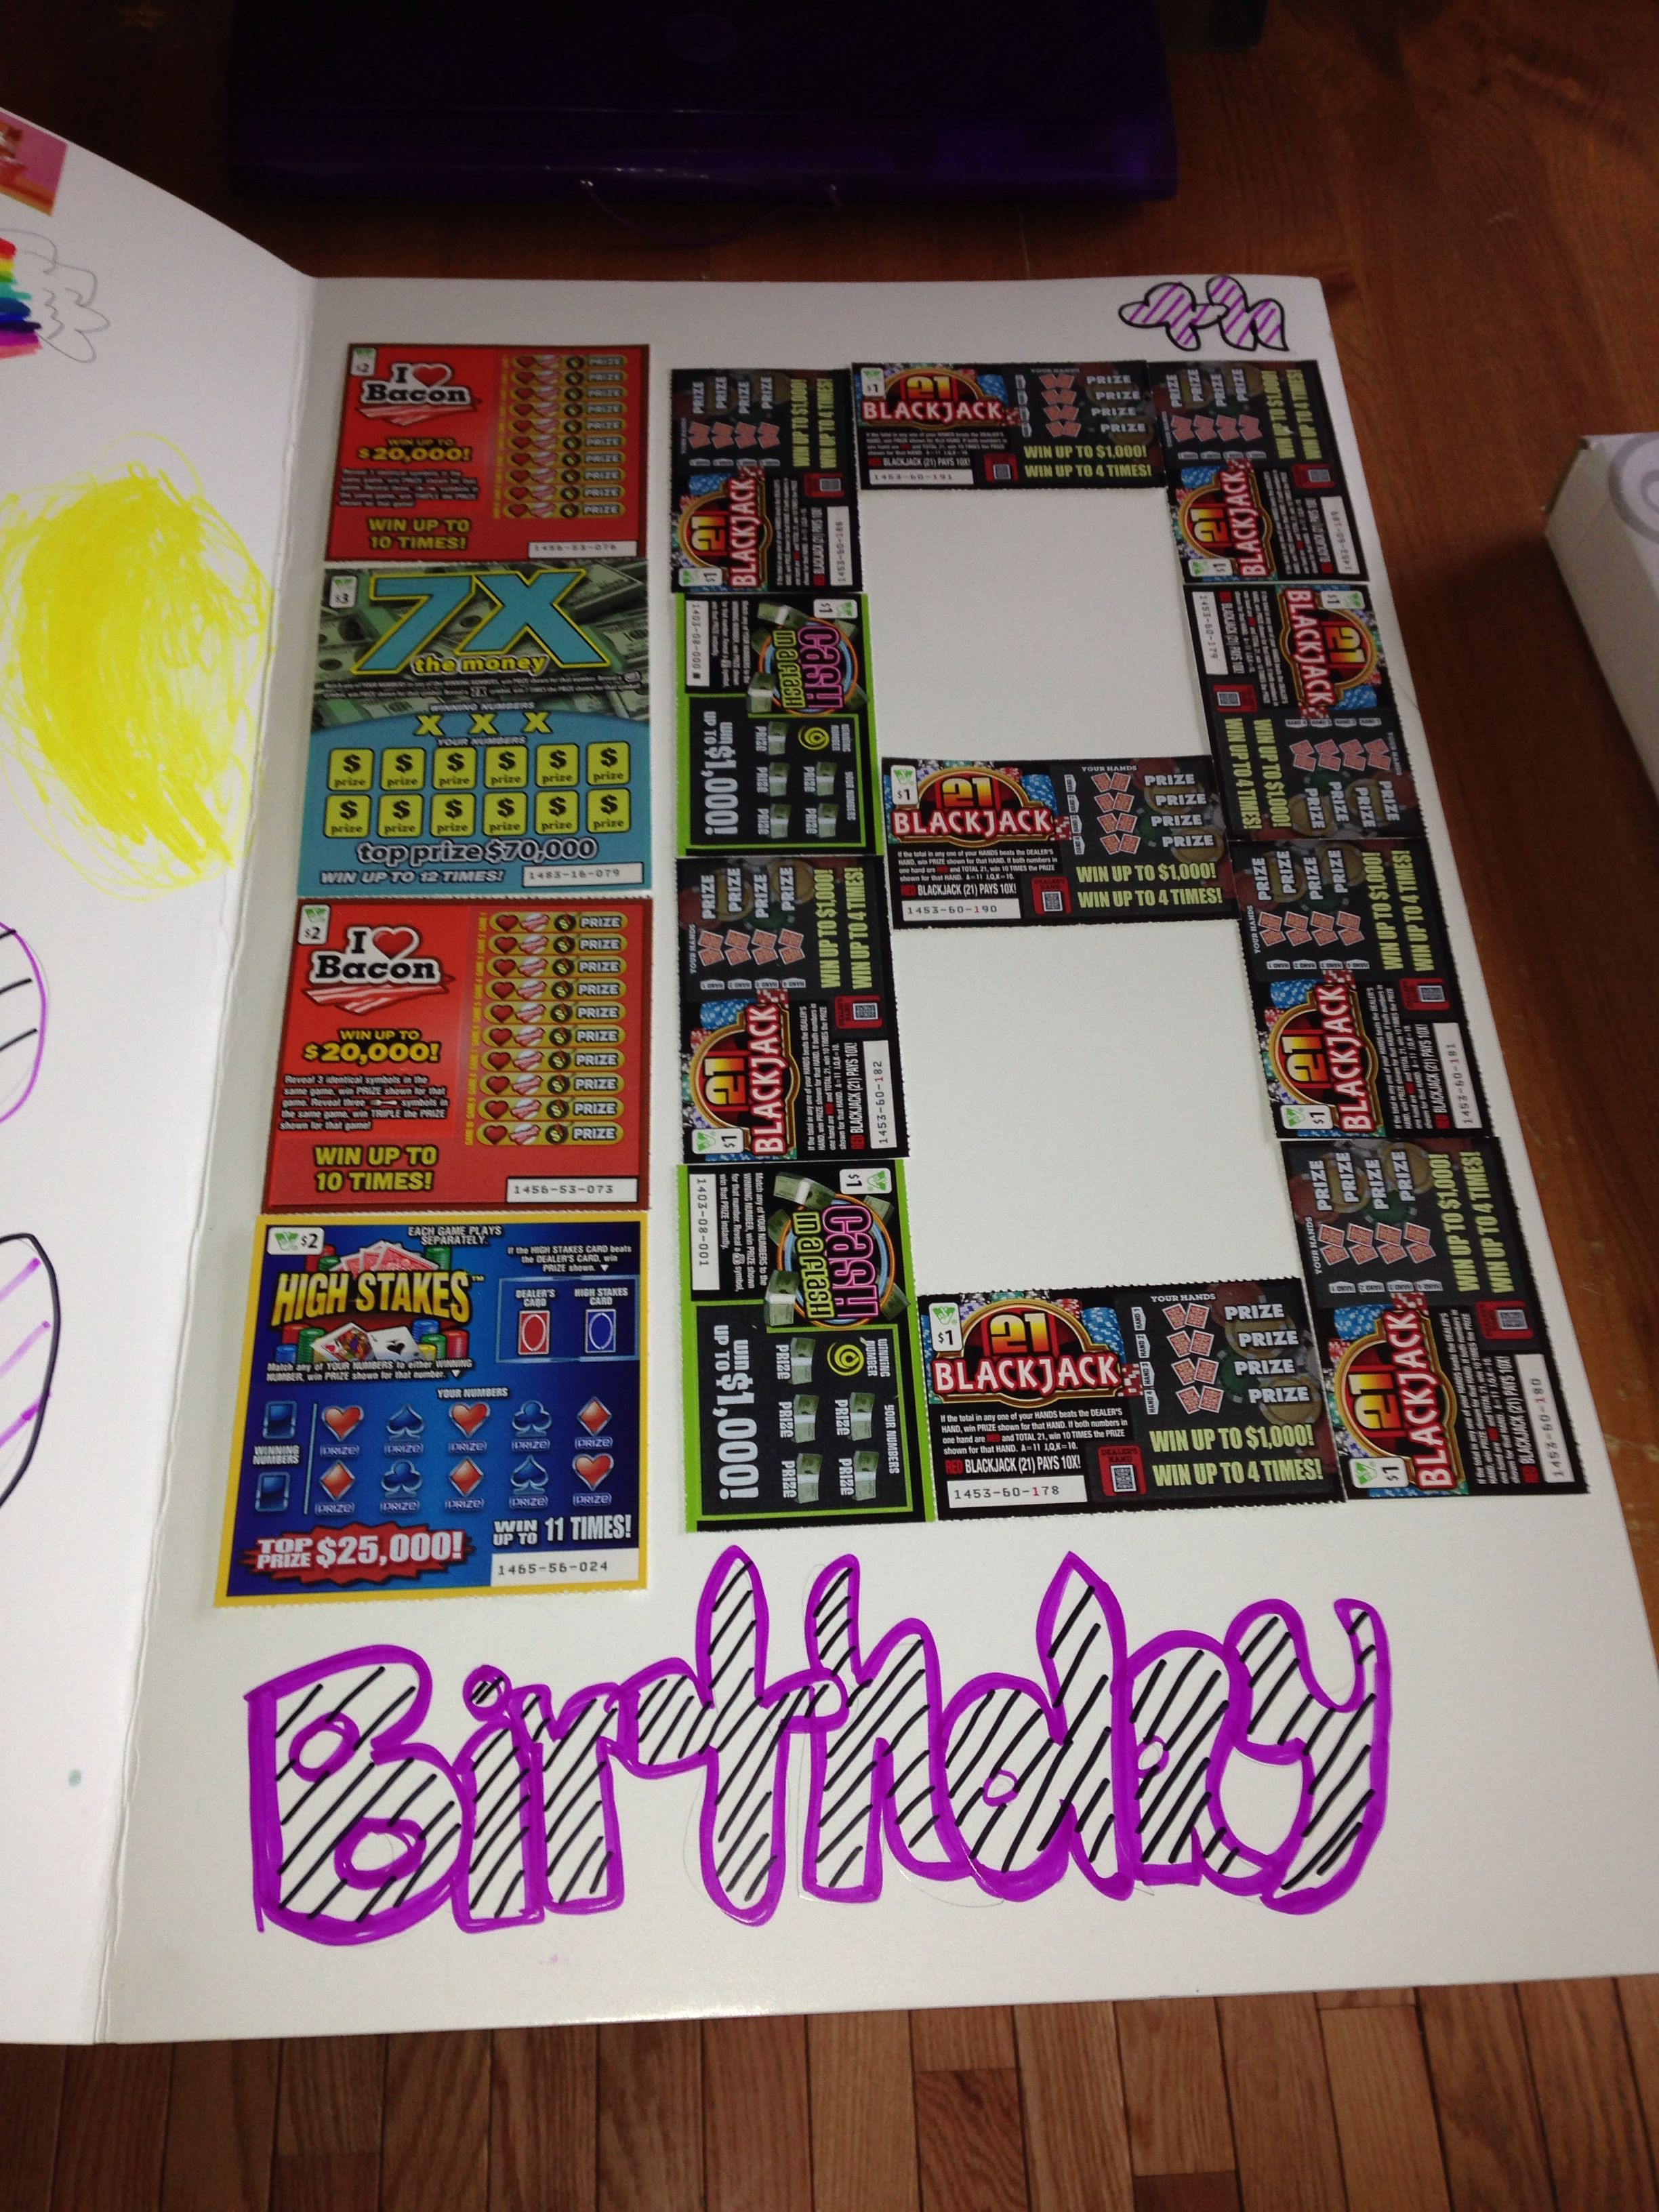 Best ideas about 18 Birthday Present Ideas . Save or Pin Scratch f lottery tickets Great 18th birthday idea Now.